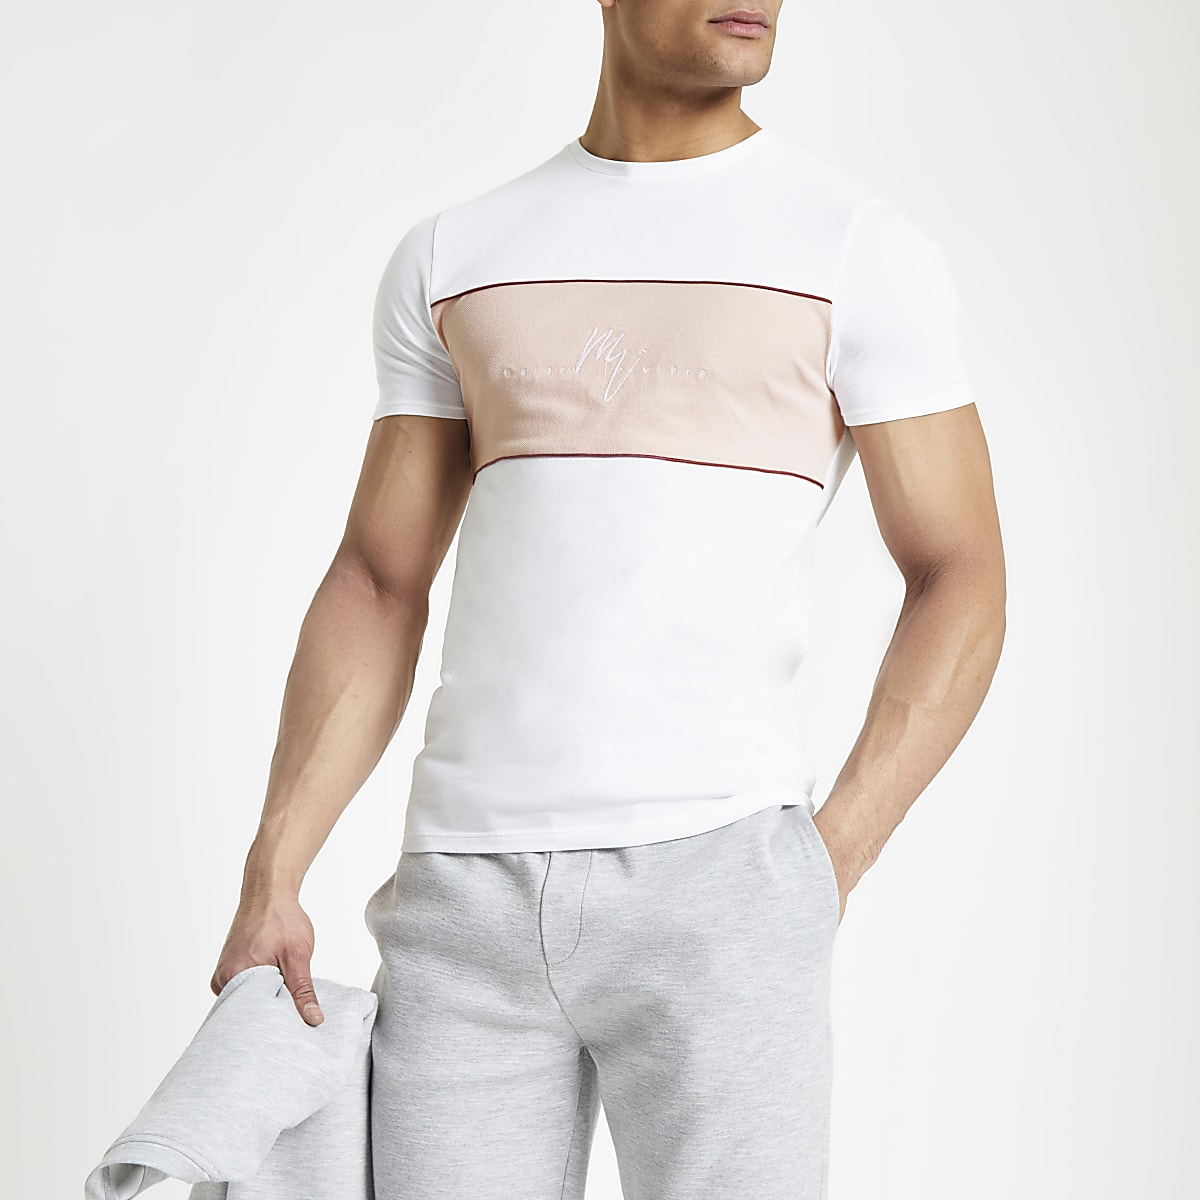 White Maison Riviera muscle fit T-shirt